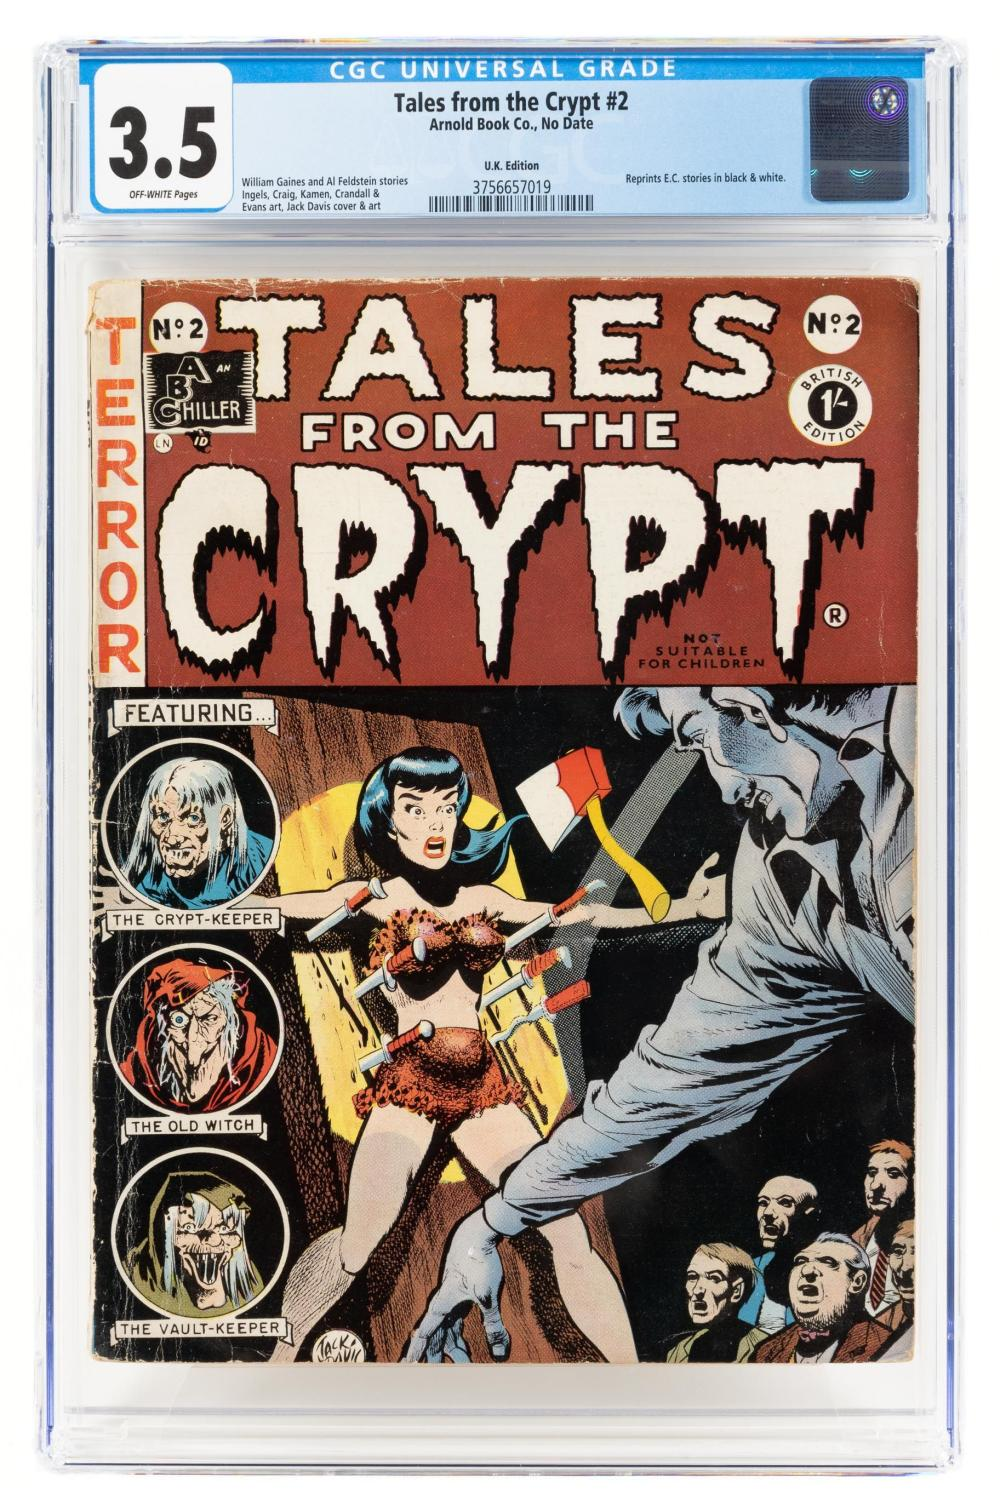 TALES FROM THE CRYPT #2 * CGC 3.5 * UK Edition * ABC * Only 3 CGC Copies